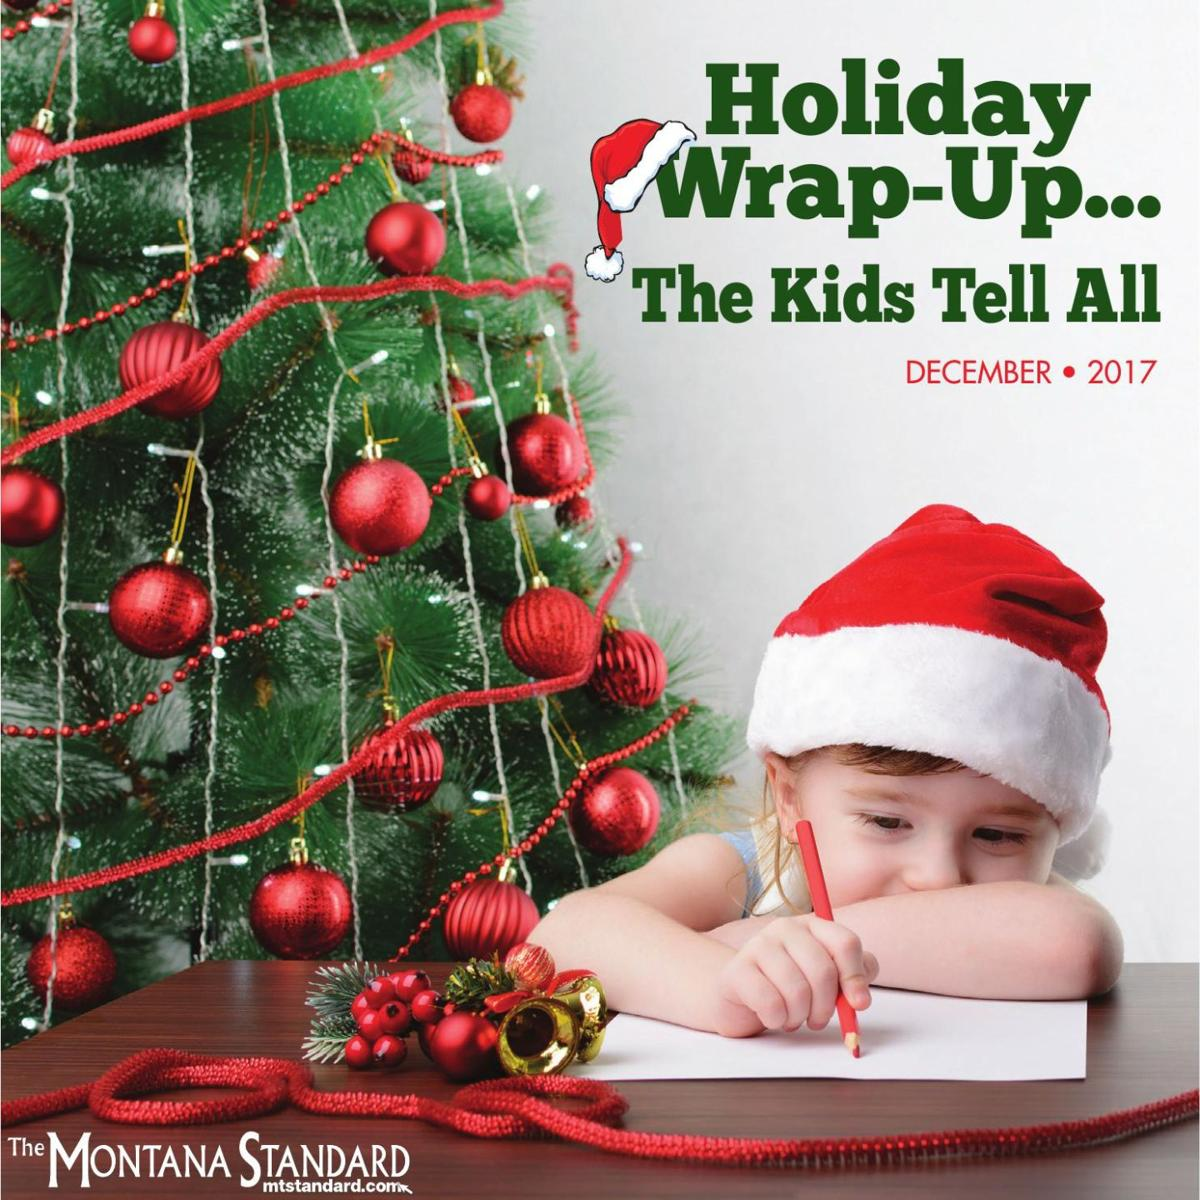 Holiday Wrap Up - The Kids Tell All - December 24, 2017